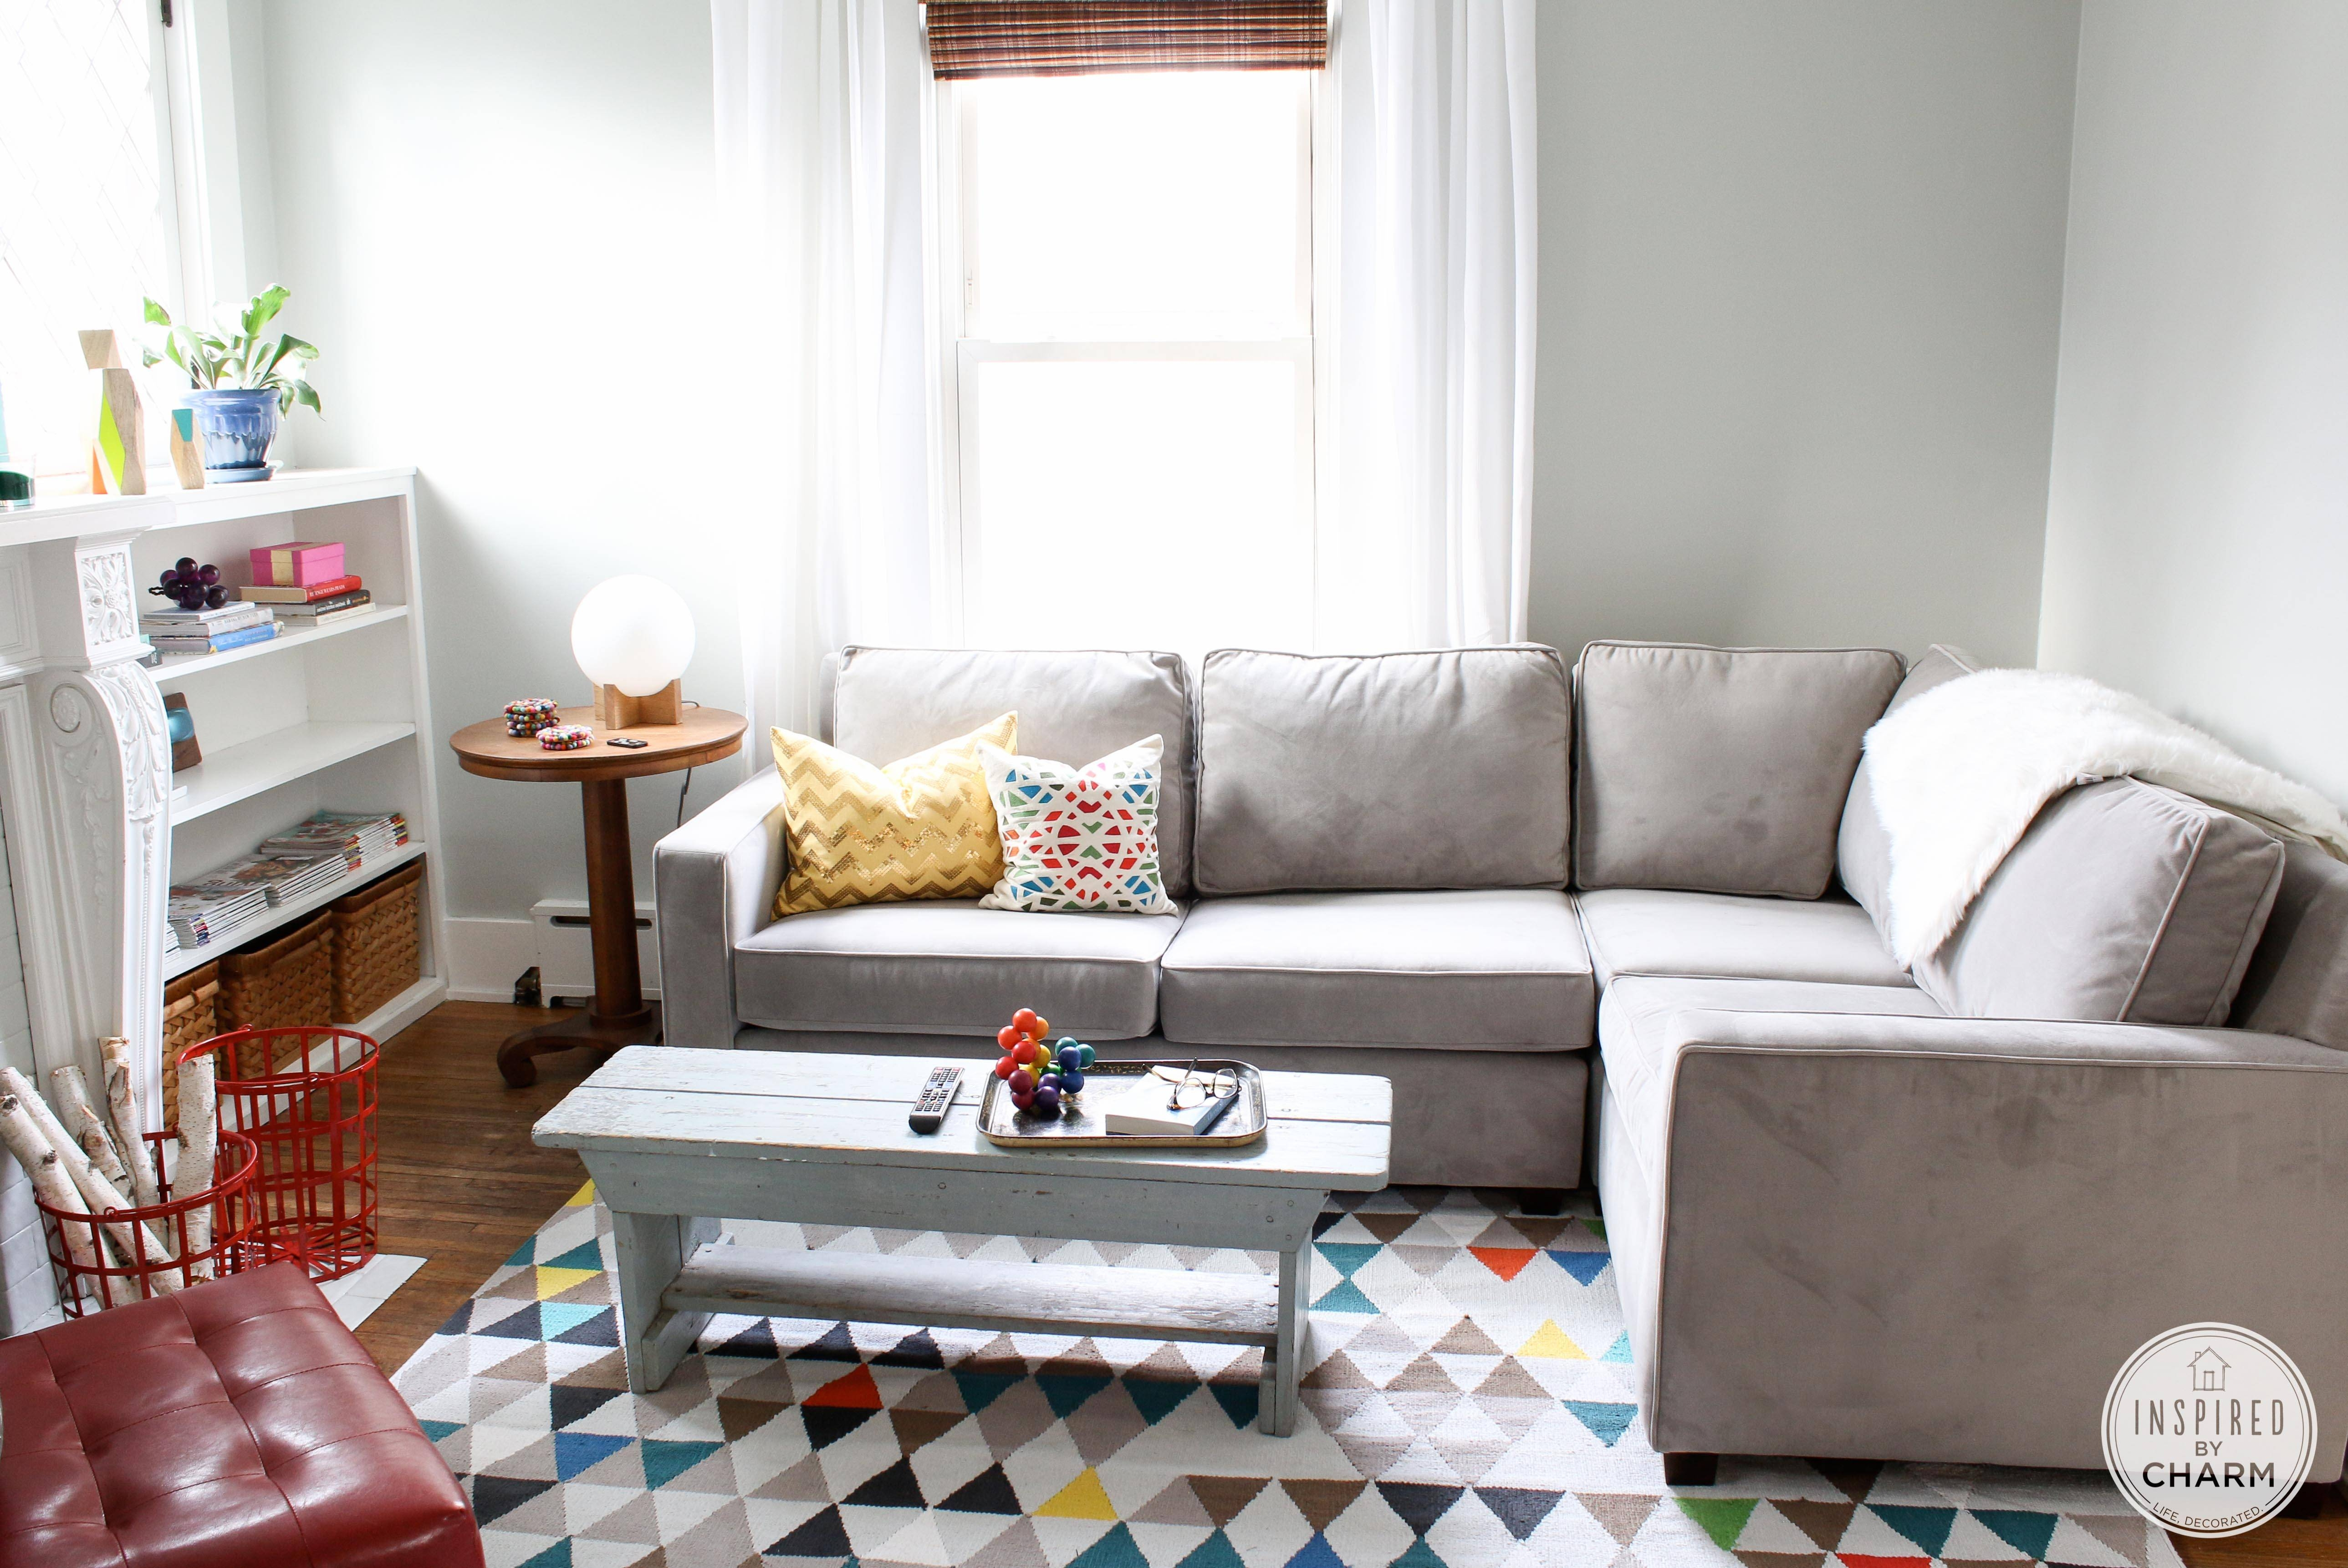 My New Couch Is Here! - Inspiredcharm throughout West Elm Sectional Sofa (Image 23 of 30)